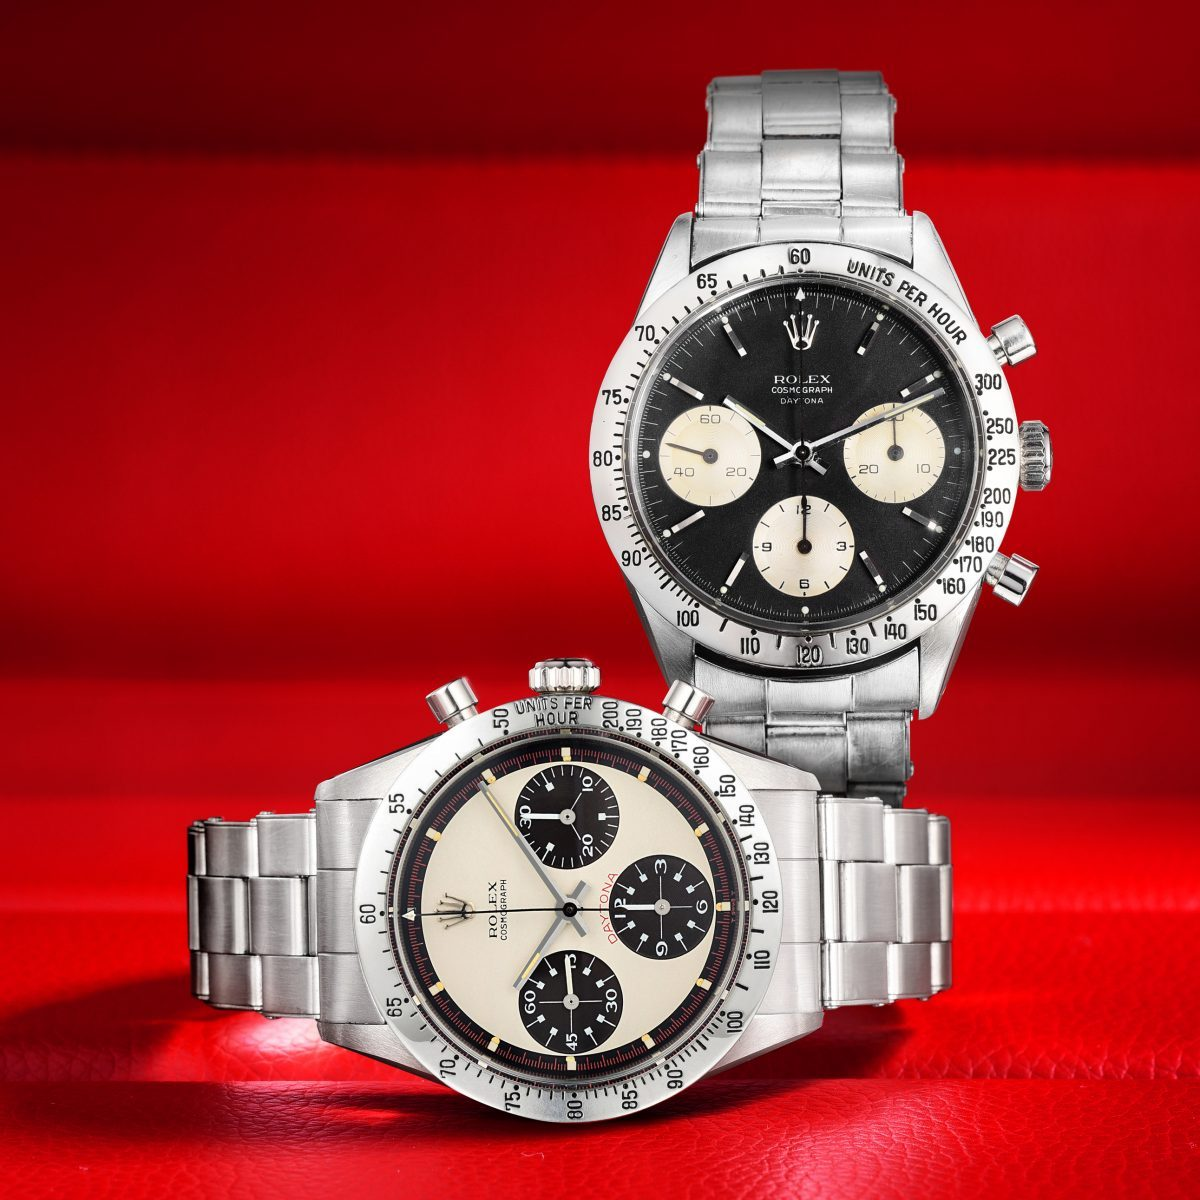 Rolex Paul Newman Daytona Ref. 6239-Fortuna Auction NYC